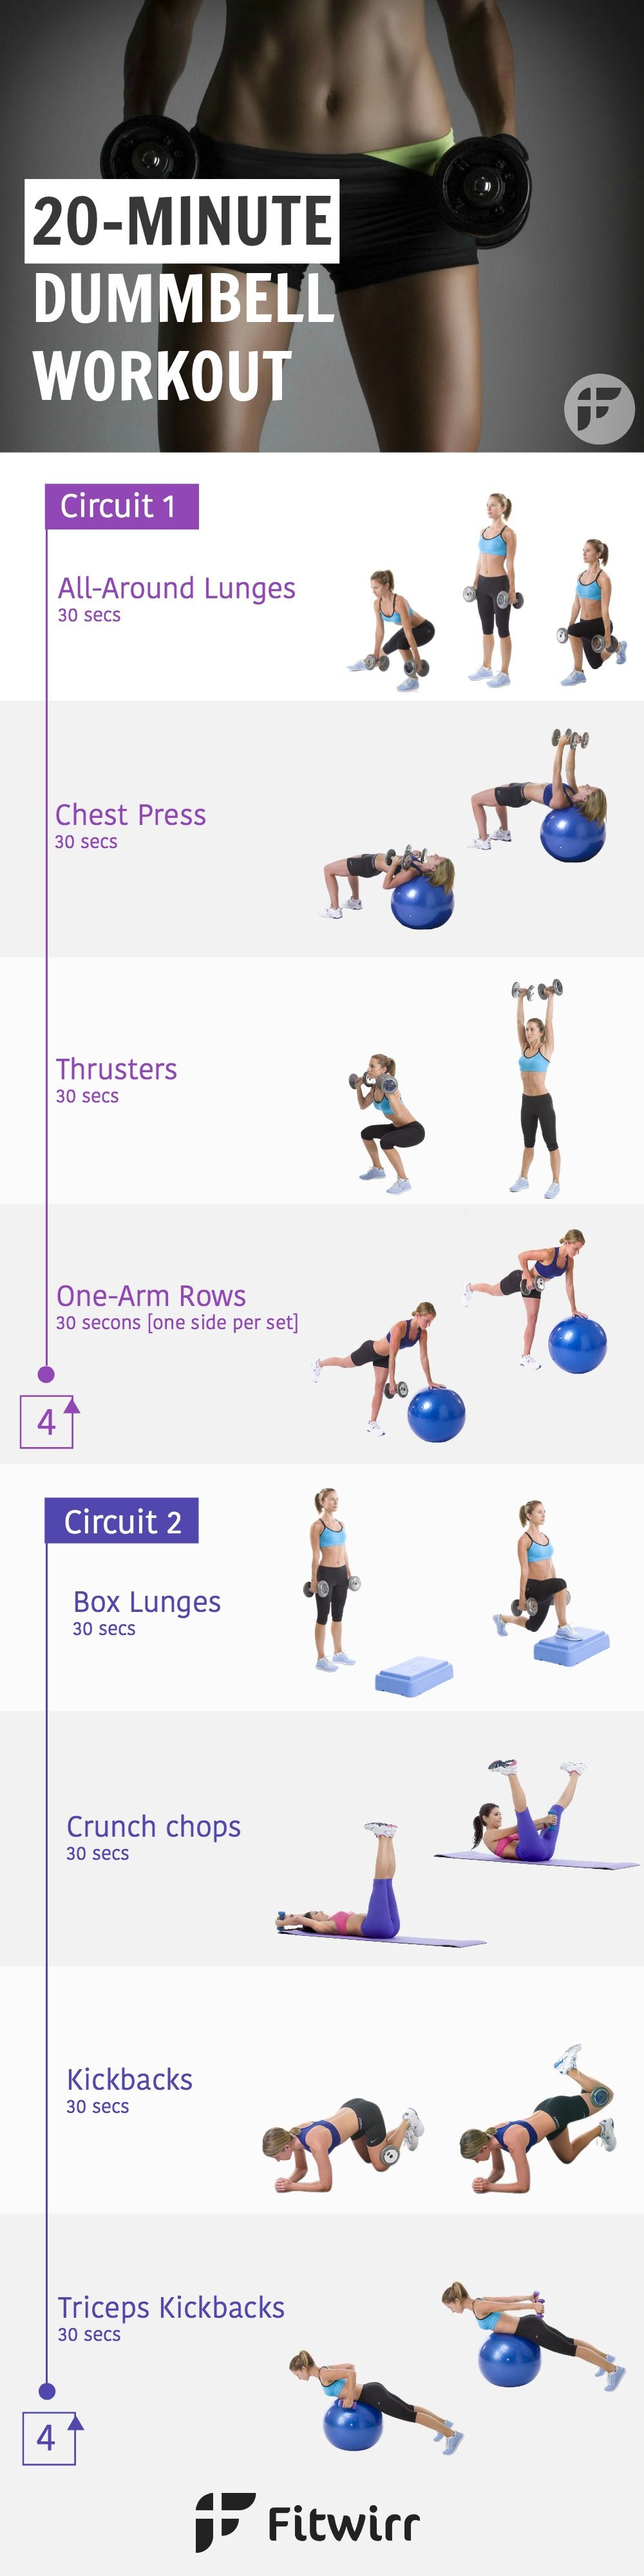 Pin On Workout And Exercise Plans